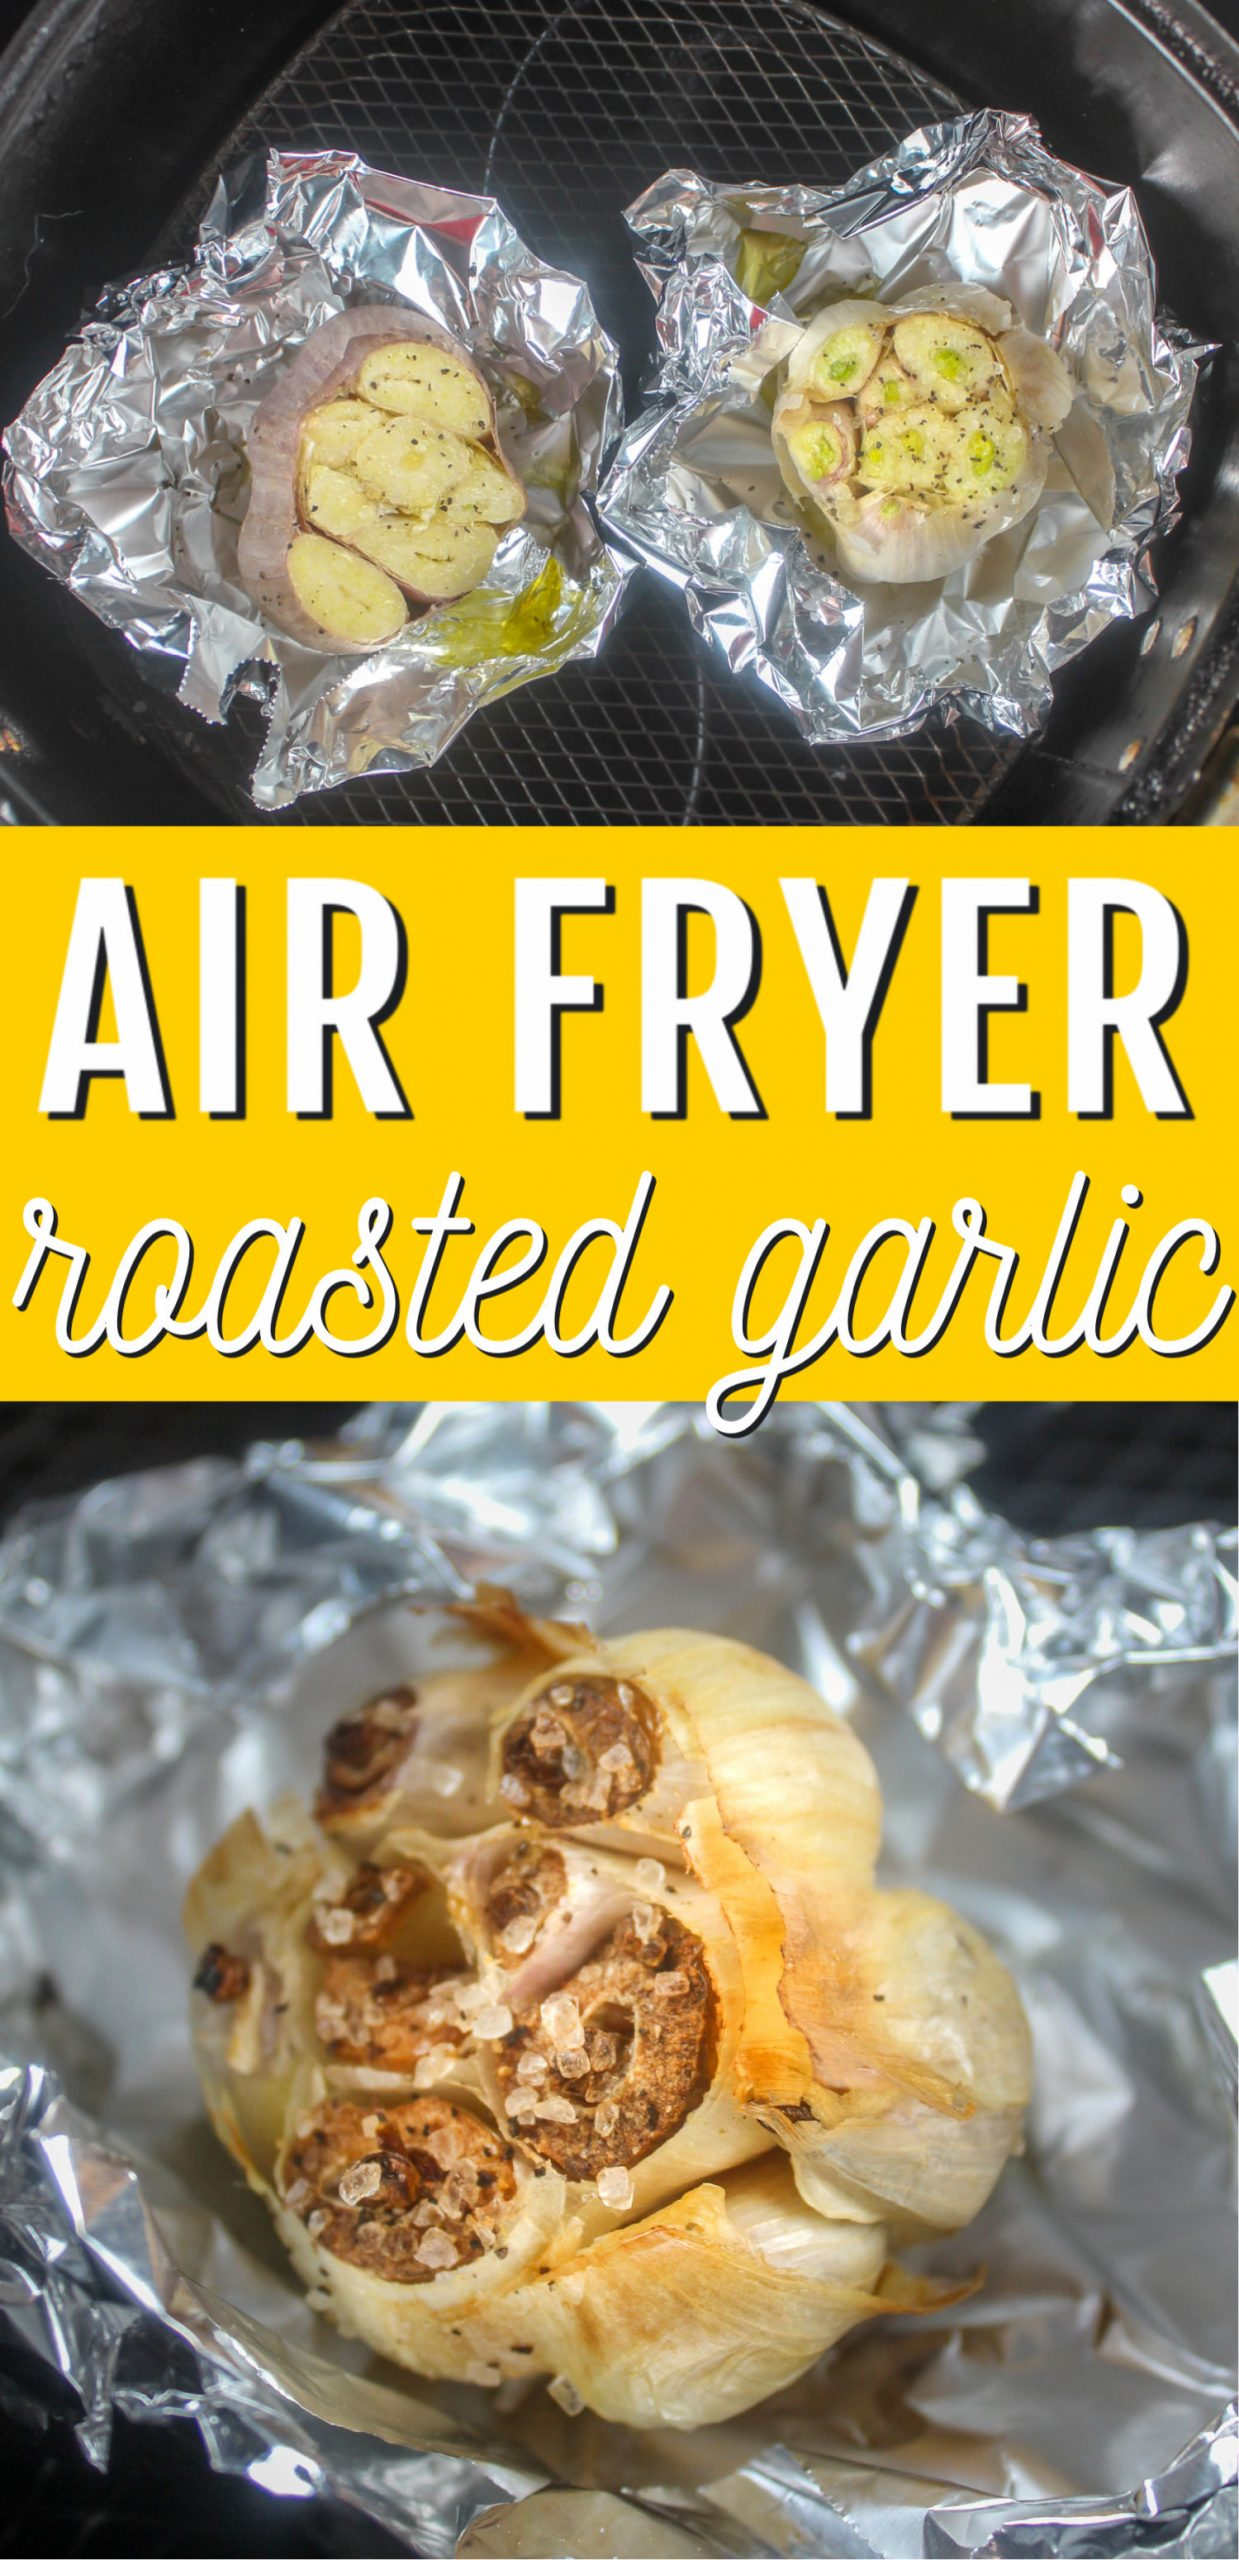 Roasted Garlic in the air fryer is so easy and has so many uses! Roasting the garlic mellows the flavor and makes this delicious almost buttery paste that you can use in so many ways!